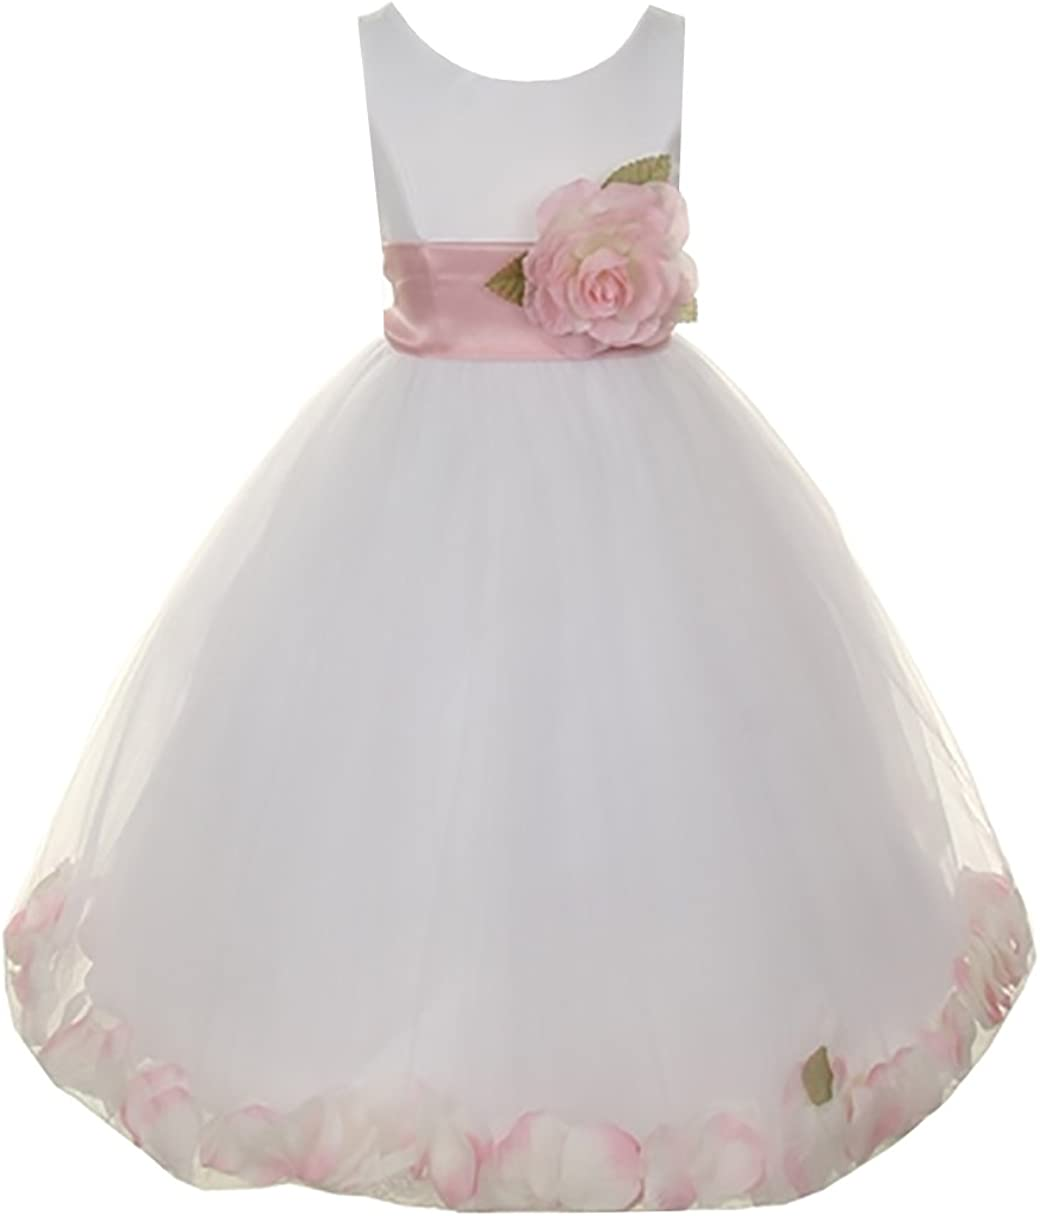 Cinderella Couture Big Girls' White Satin Tulle Petal Flower Girl Pageant Dress